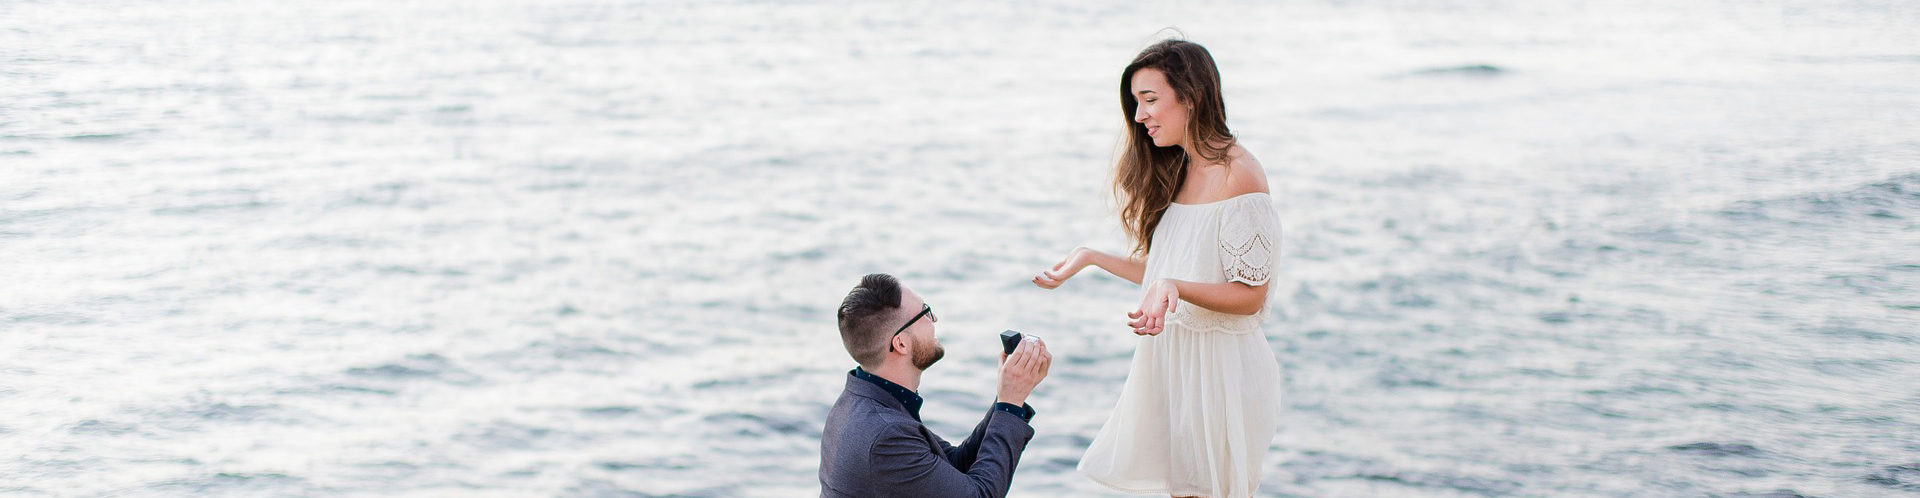 Man proposing to woman at the sea